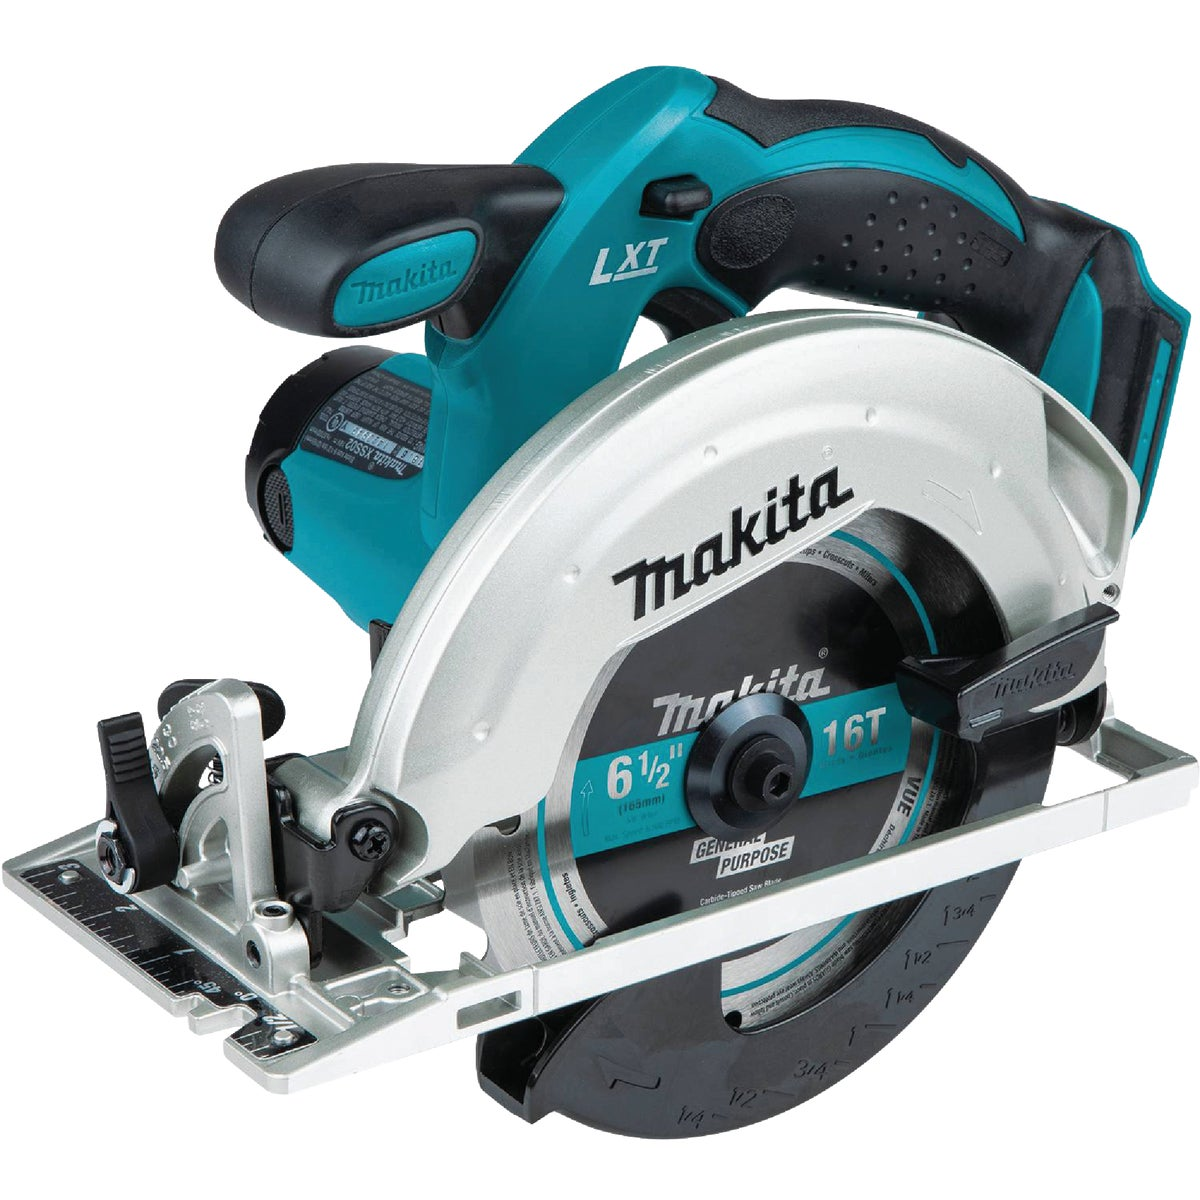 "18V 6.5"" CIRCULAR SAW - BSS611Z by Makita Usa Inc"